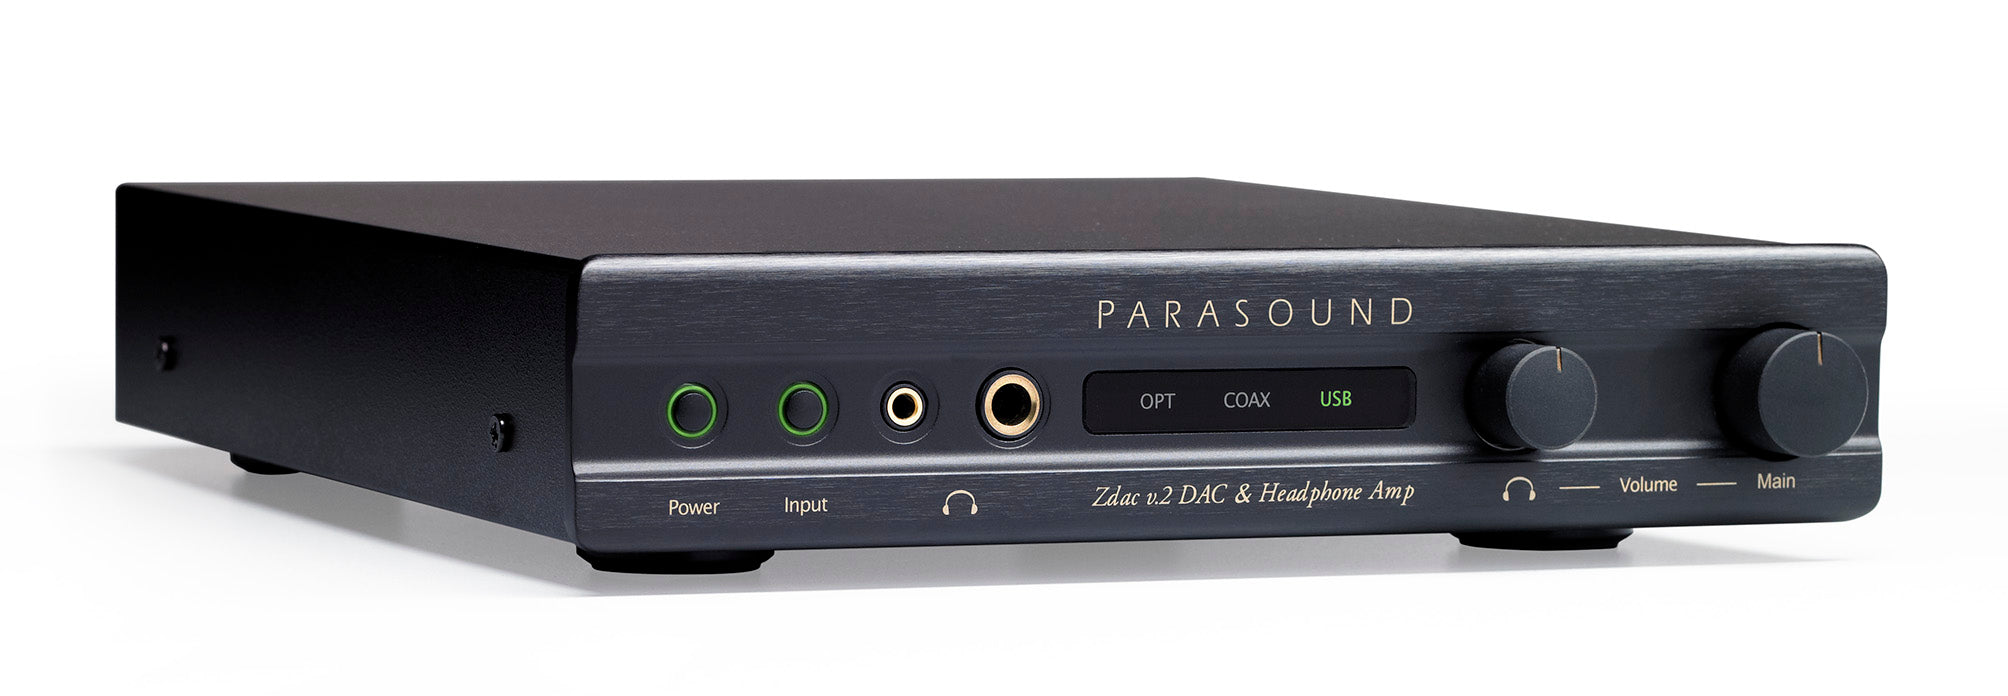 Parasound ZDac V.2 DAC and Headphone Amplifier - Safe and Sound HQ